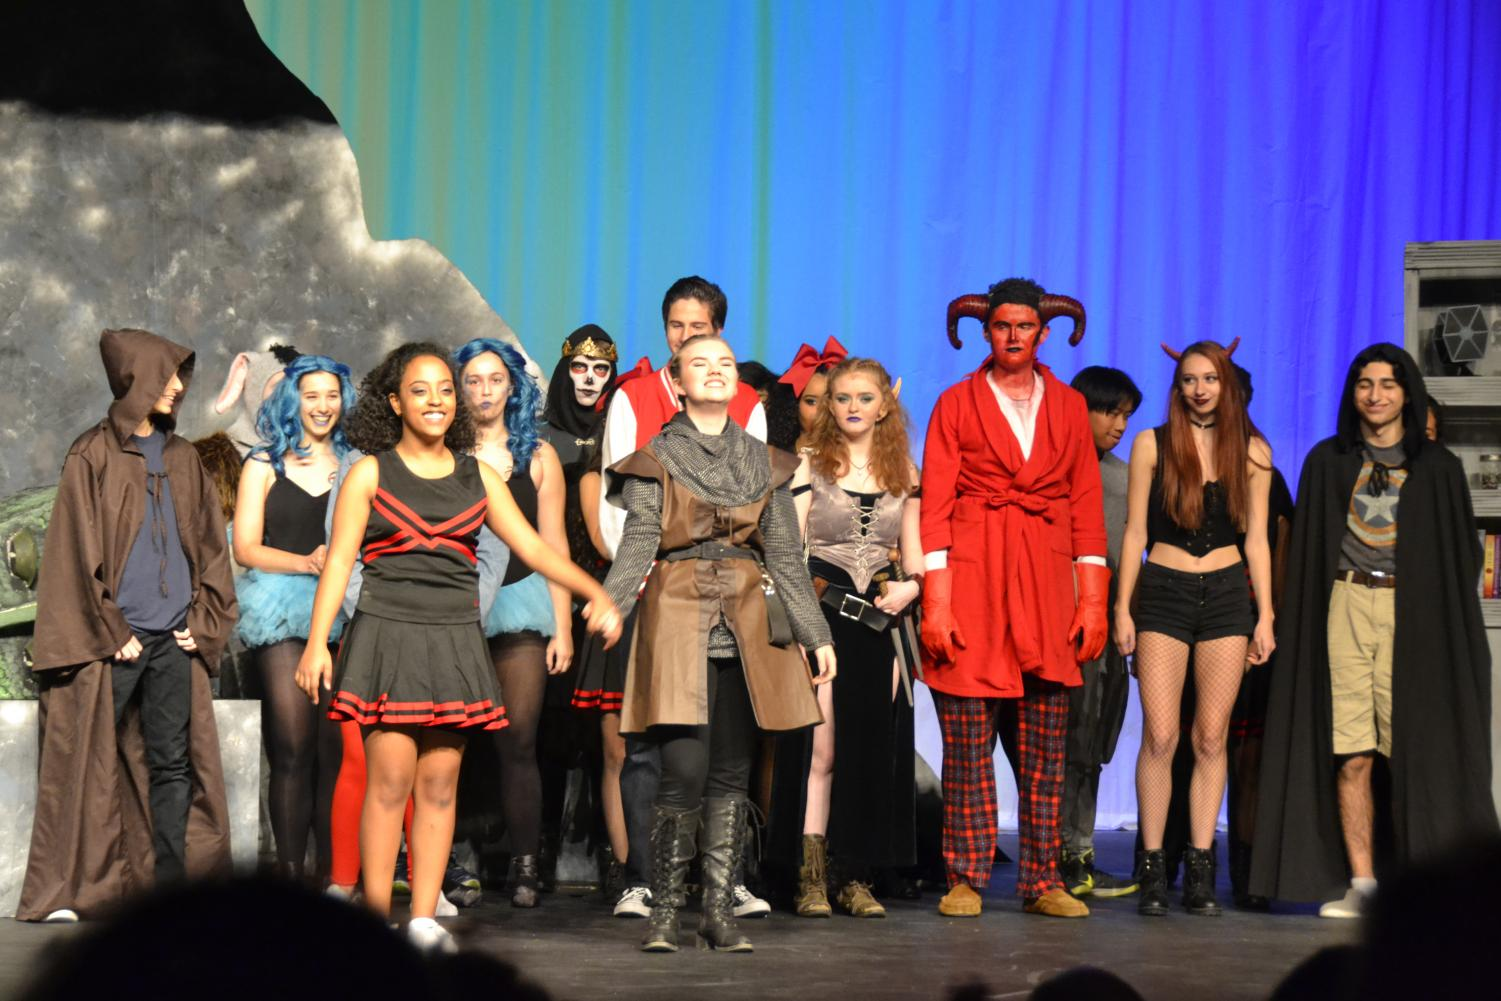 Juniors%2C+Emily+Trachsel+%28Tillius%29+and+Rediate+Zewdu+%28Agnes%29+come+up+from+a+bow+for+the+noisy%2C+cheering+audience.